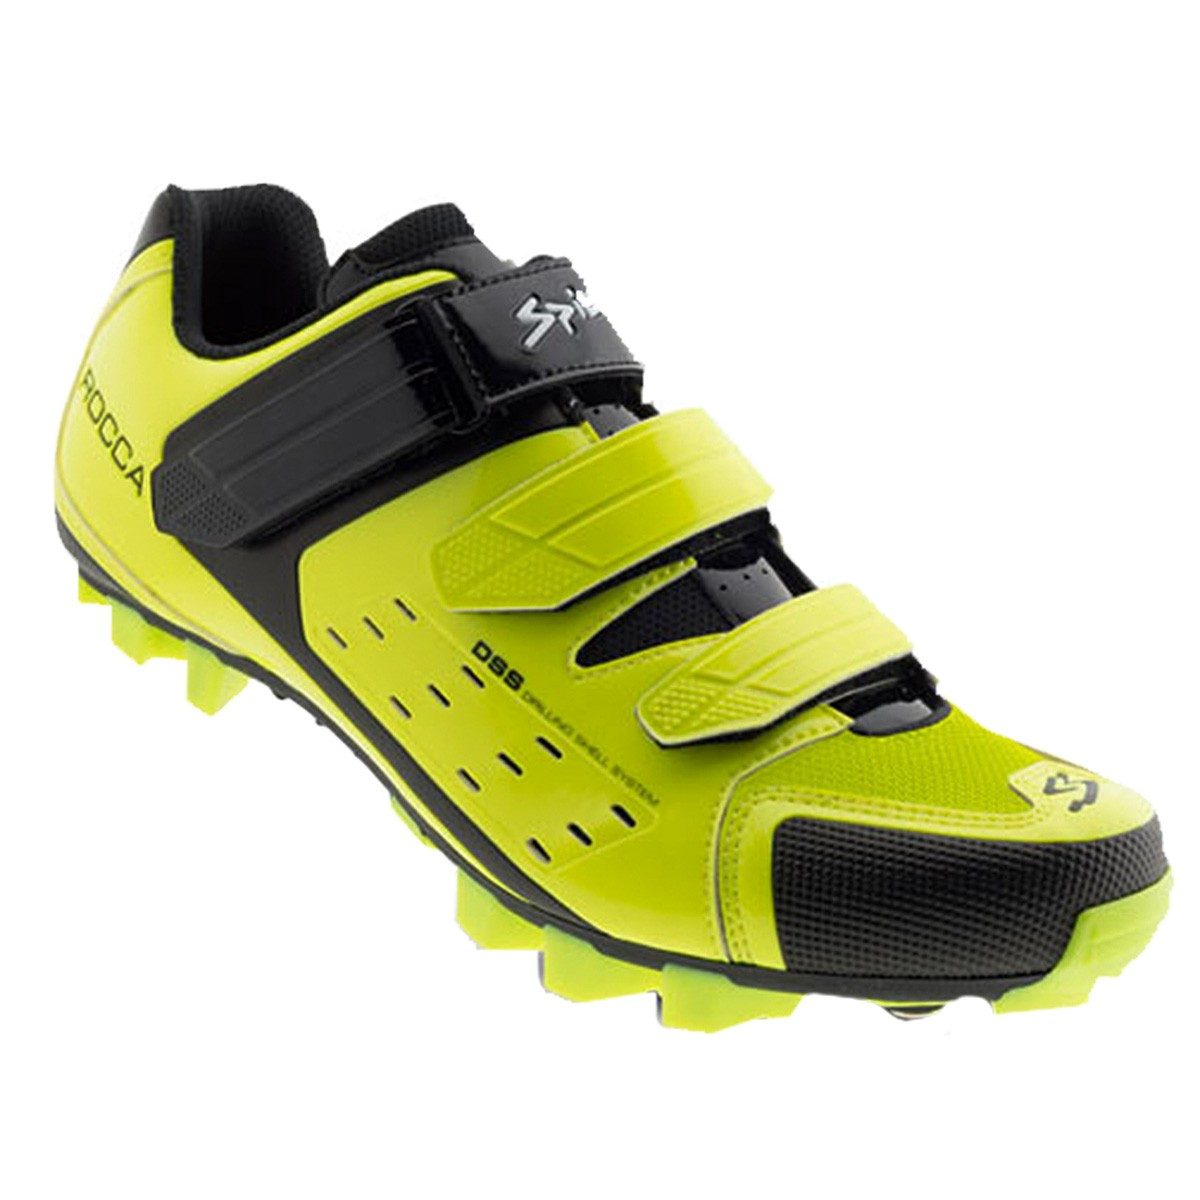 chaussures cyclisme spiuk rocca chaussures cyclisme. Black Bedroom Furniture Sets. Home Design Ideas